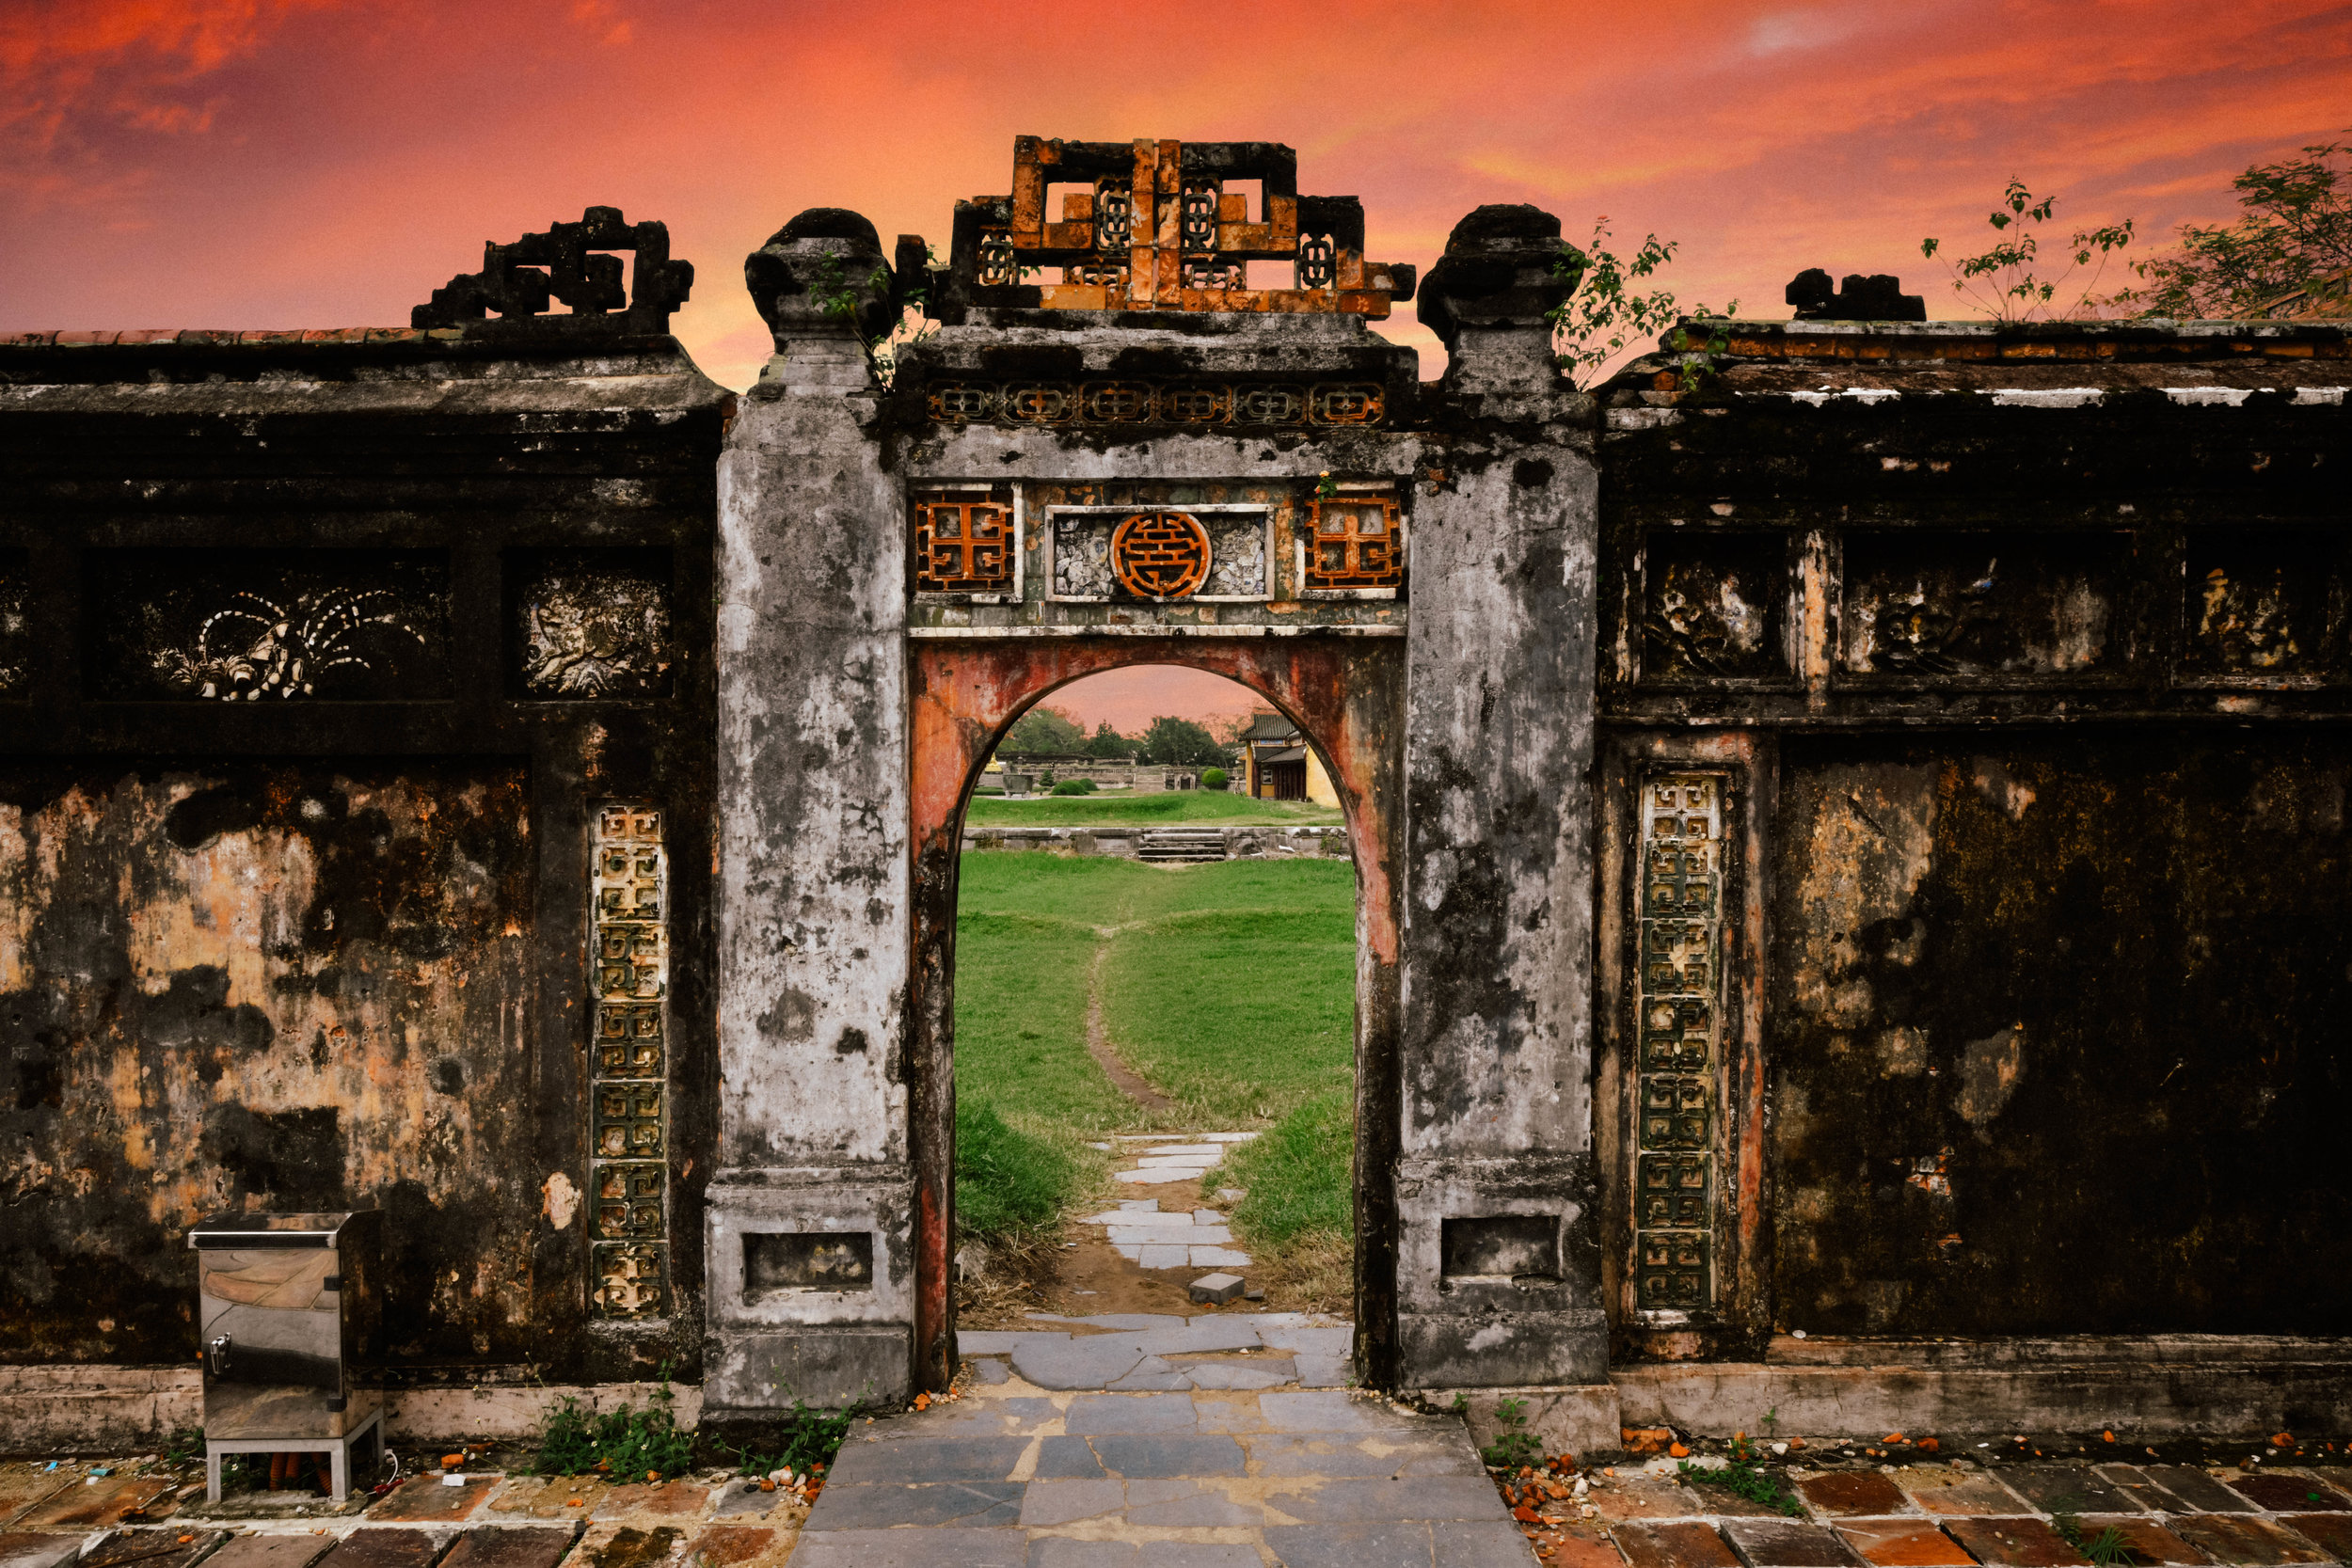 Imperial gate at Hue